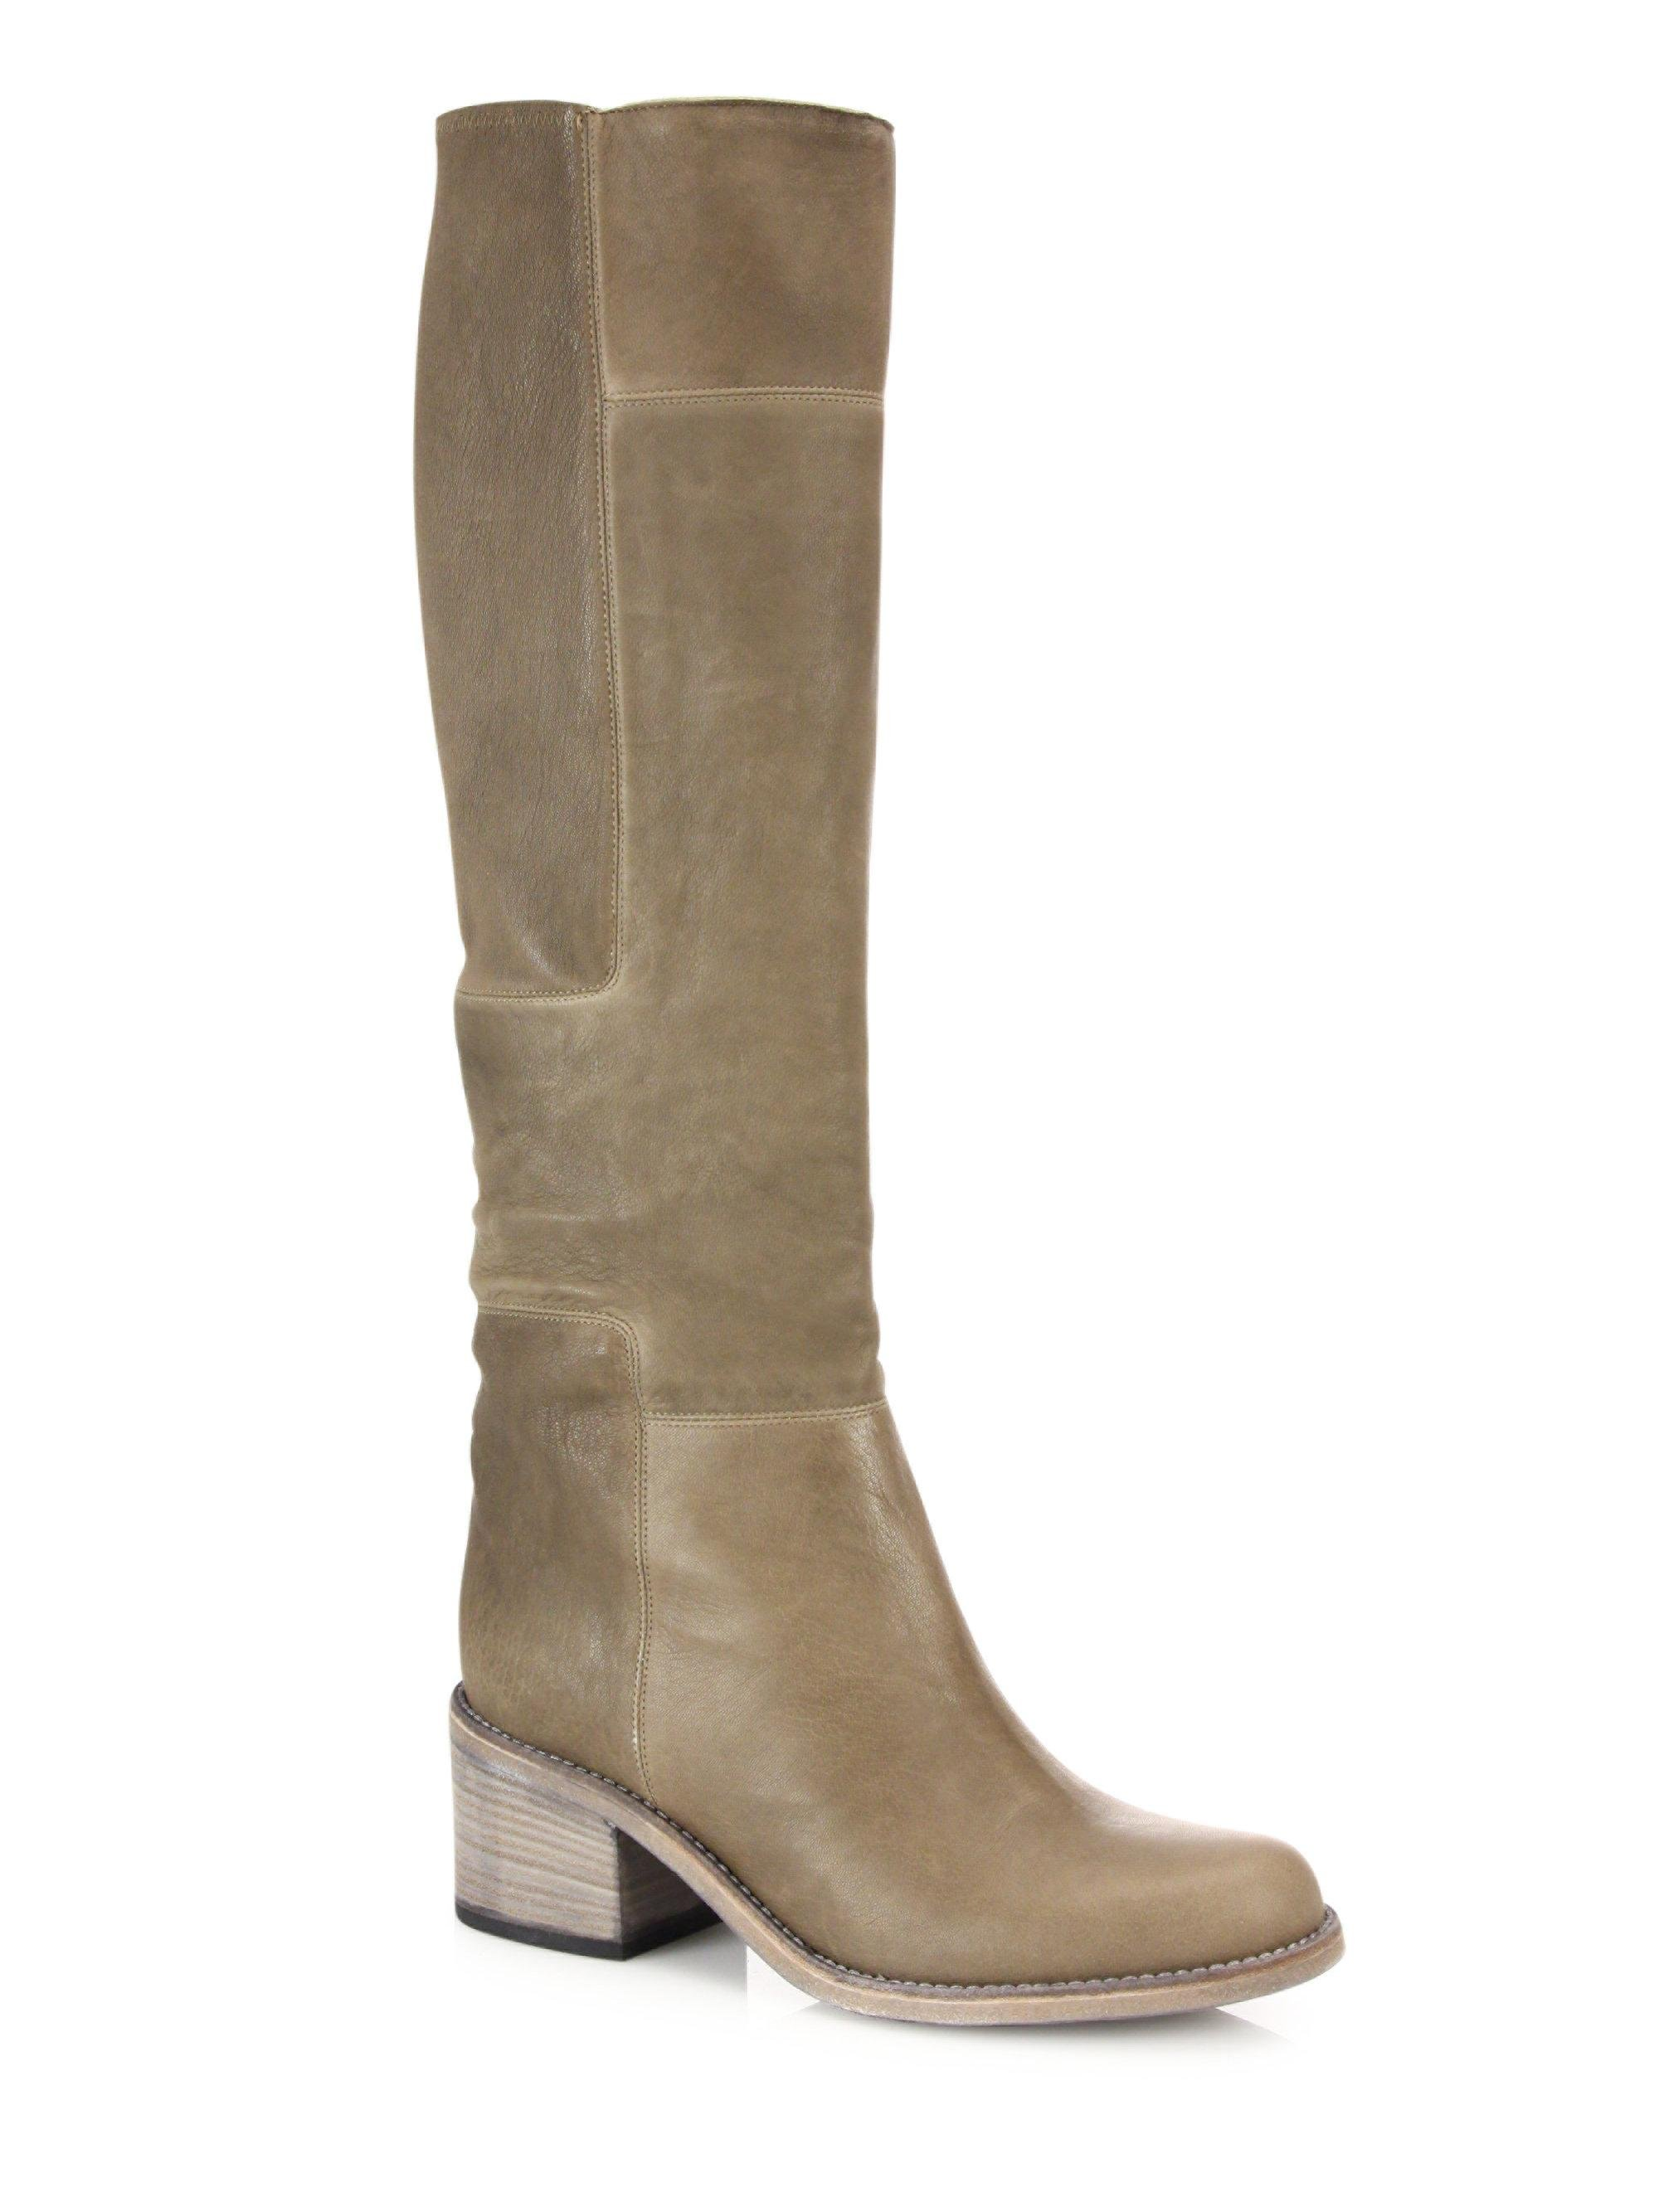 LD Tuttle - Brown The Lost Leather Knee-High Boots - Lyst. View fullscreen